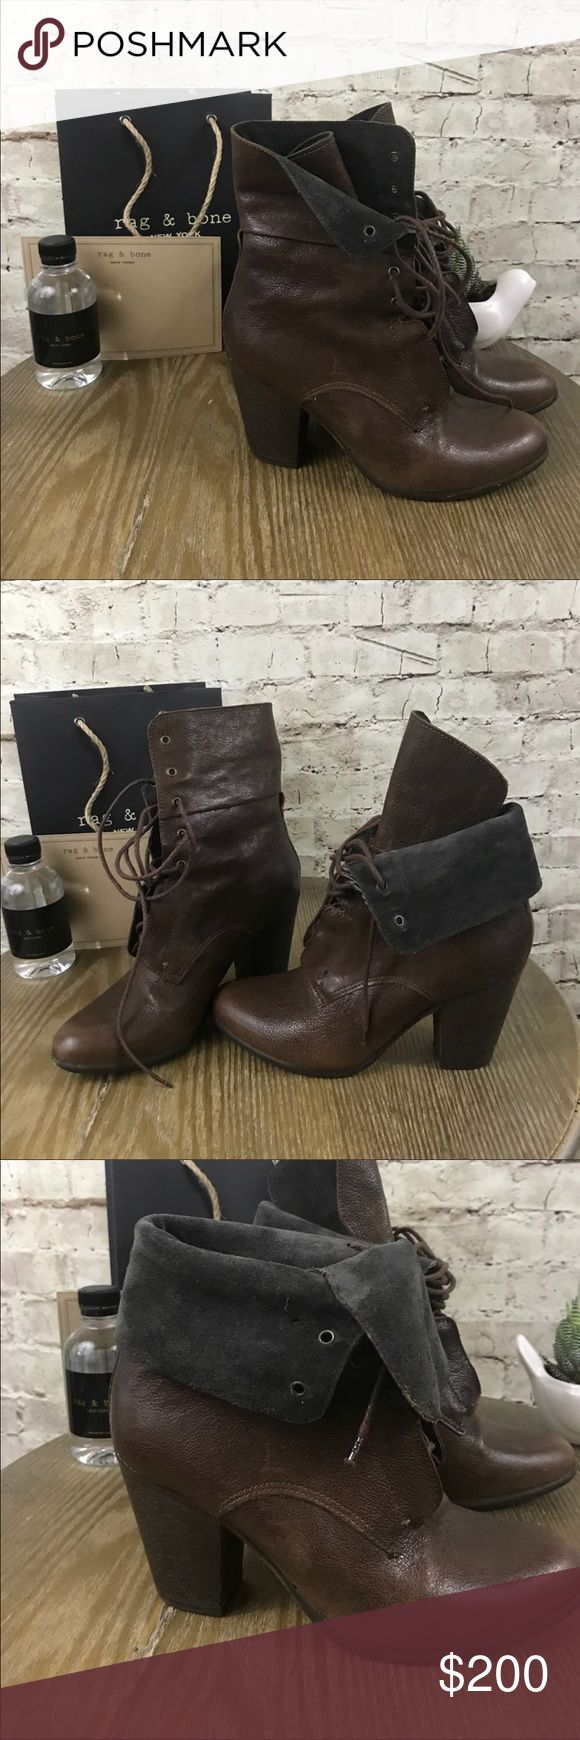 """Rag and Bone Deacon tall lace up boots Authentic . Rare Rag and Bone boots. Great condition. Amazing boots. Extremely comfortable. A couple minor scratches. Approx. heel height: 3"""". Approx. boot shaft height: 6 1/2"""". Leather upper, lining and sole. Made in Italy. Salon Shoes rag & bone Shoes Ankle Boots & Booties"""